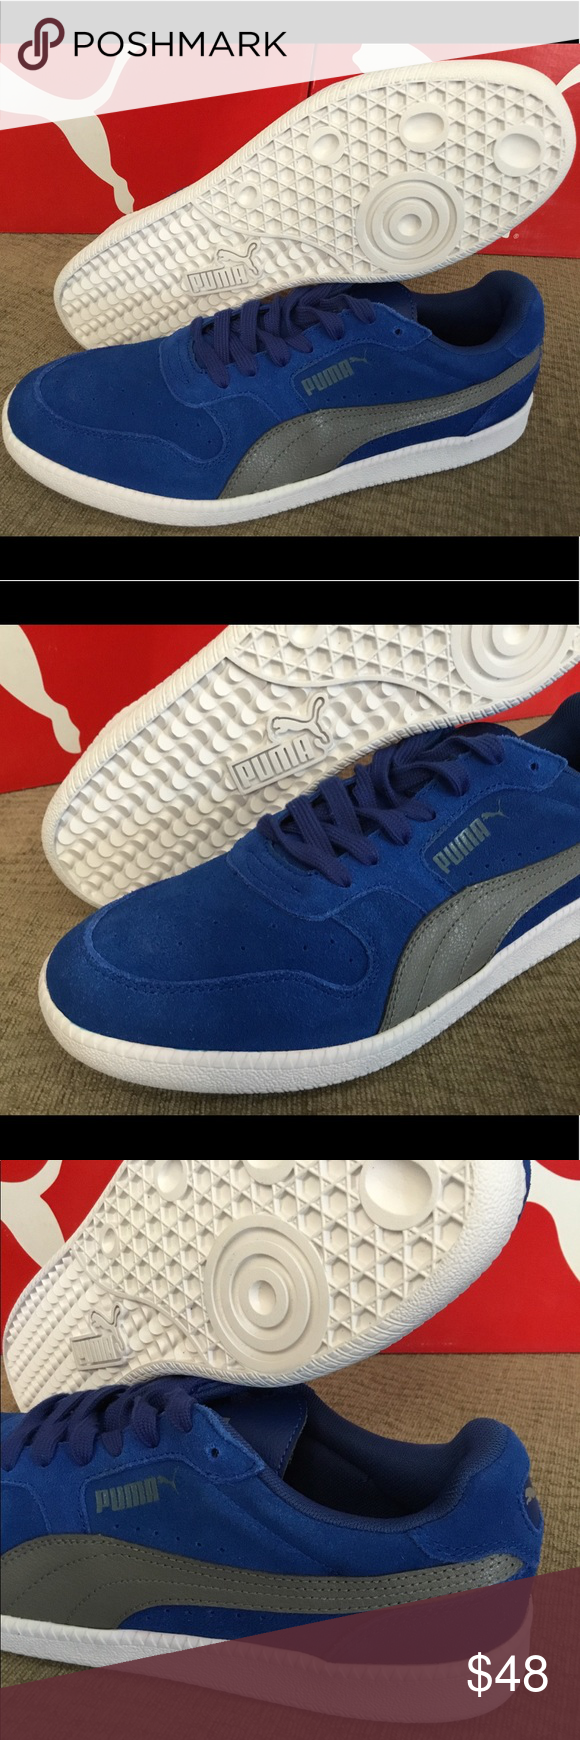 icra suede trainers